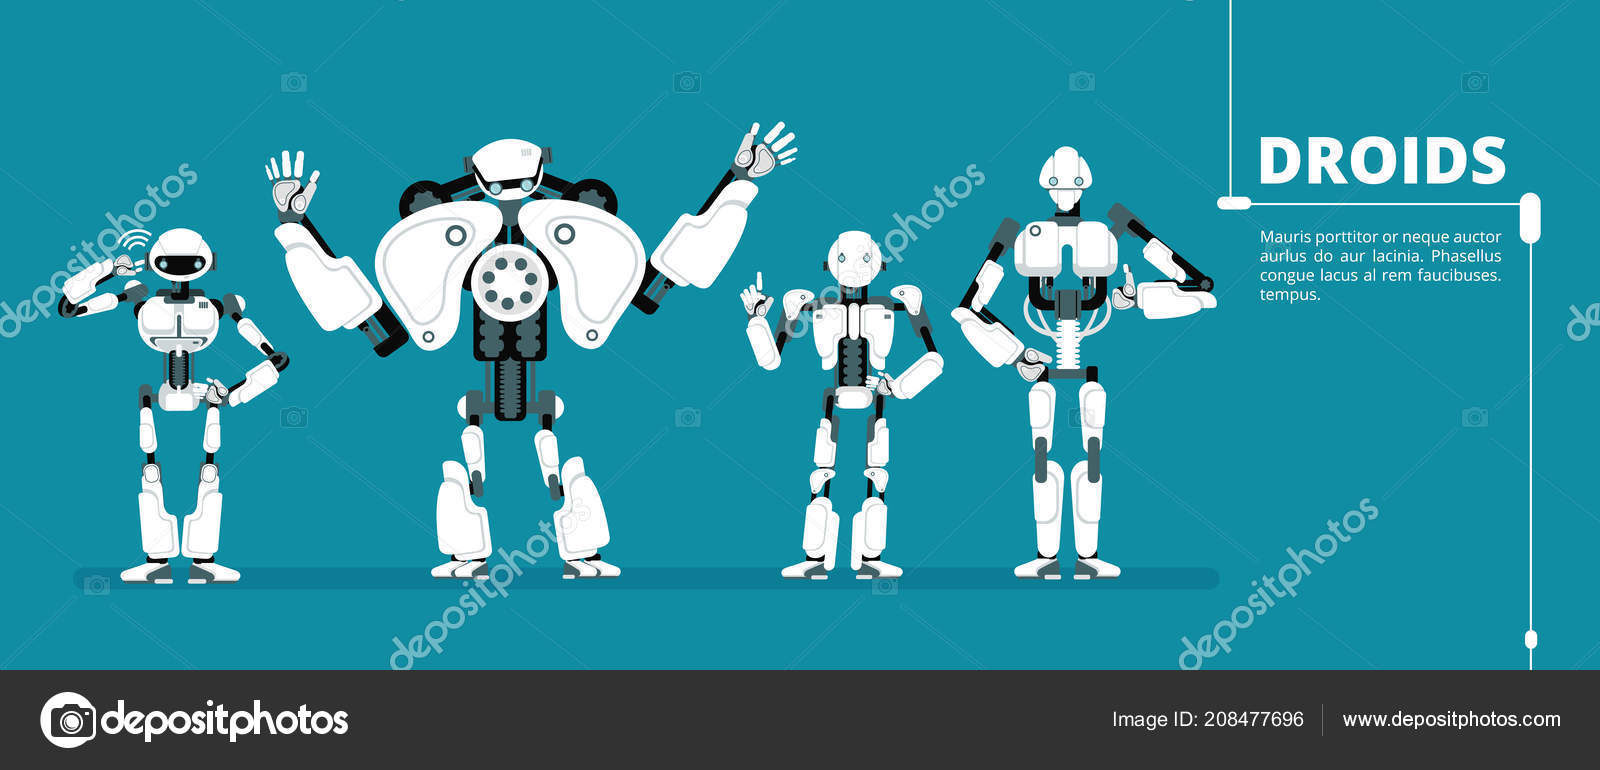 Cartoon Robot Android Cyborg Group Artificial Intelligence Vector